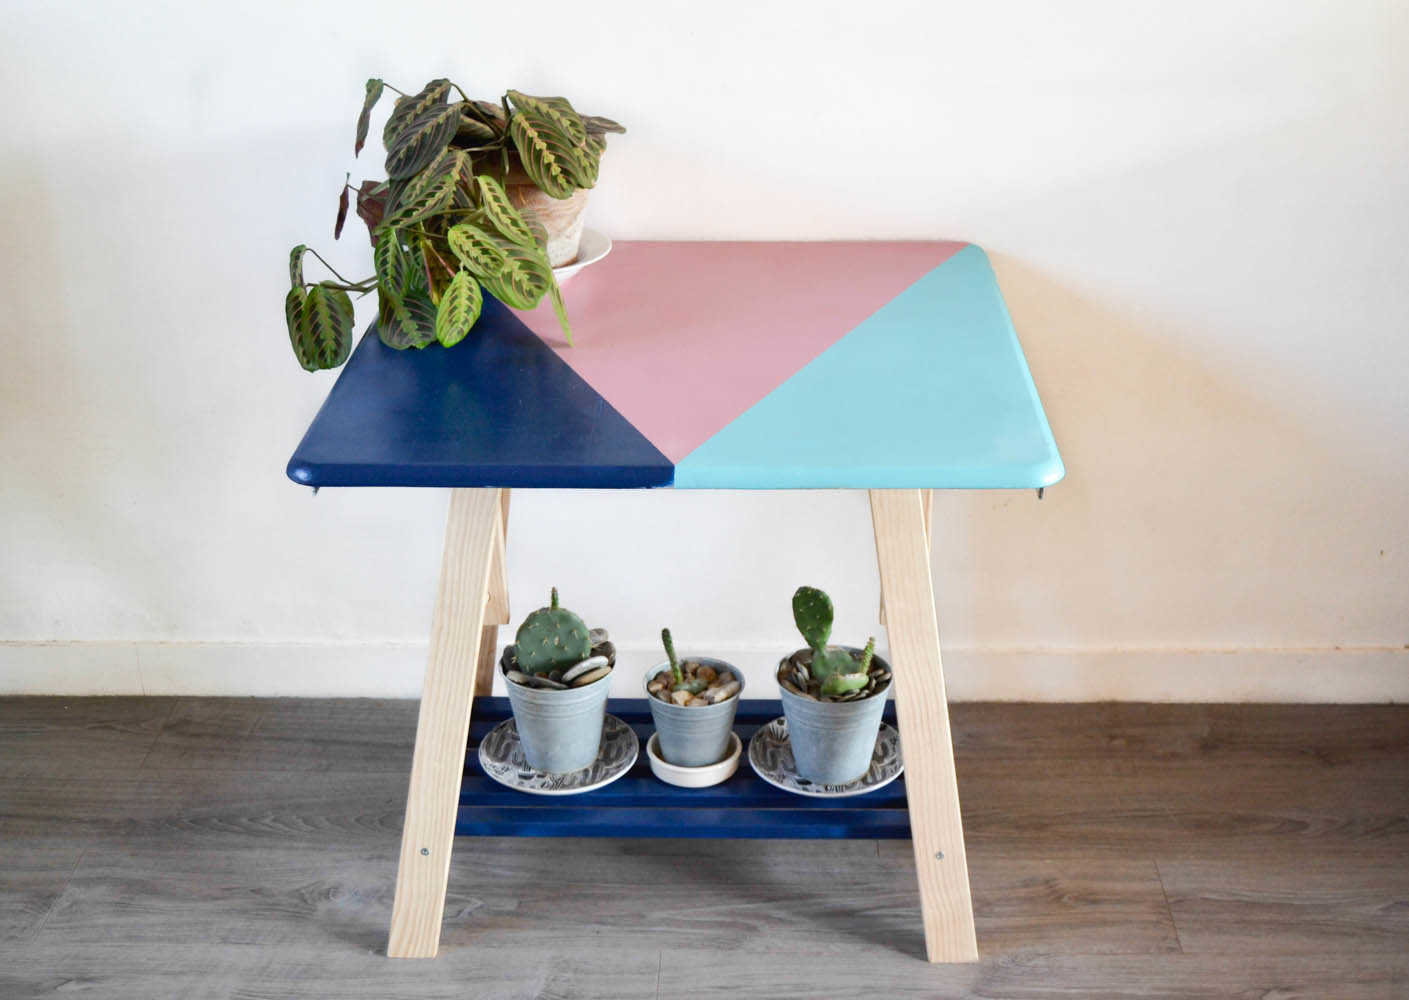 Medium table g%c3%a9om%c3%a9trique porte plante